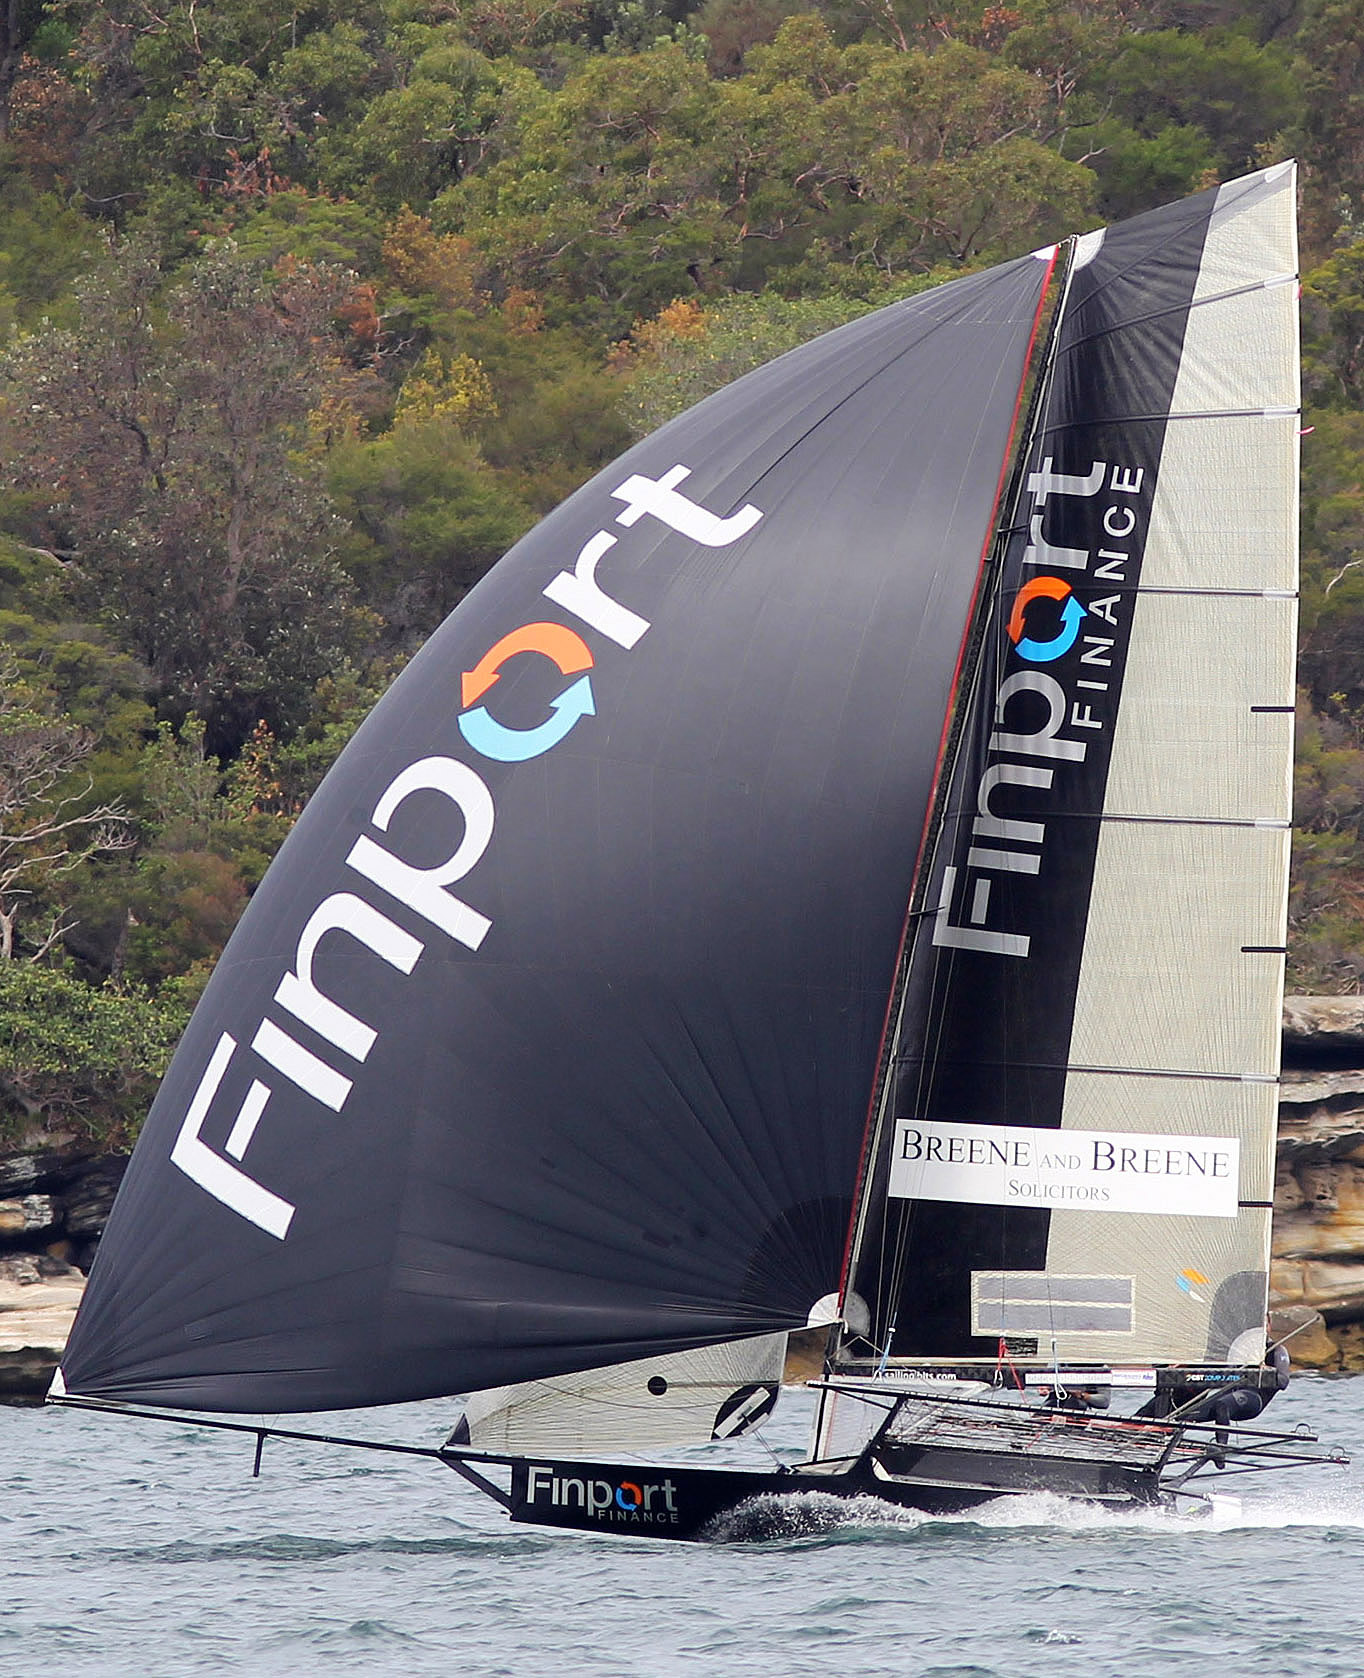 Finport Finance cruises to victory in Race 1 of the Australian 18ft Skiff Championship on Sydney Harbour toda